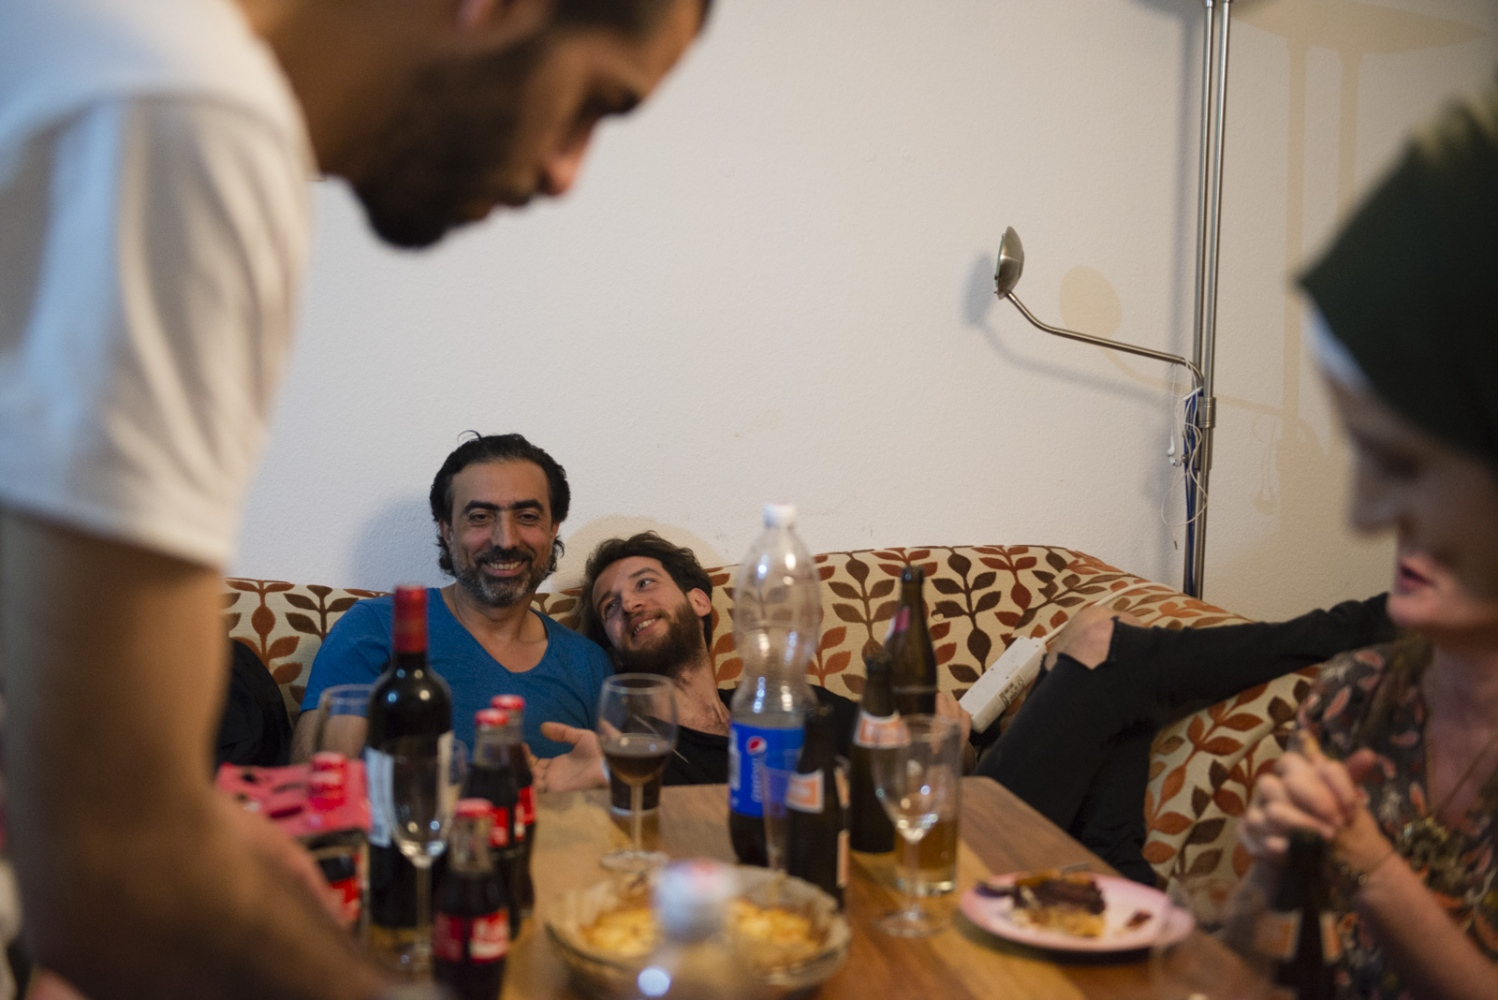 BERLIN | GERMANY | 2016-06-10 | Syrian and German friends have come together to celebrate Alaa's 26th birthday at his house over food and homemade cake.